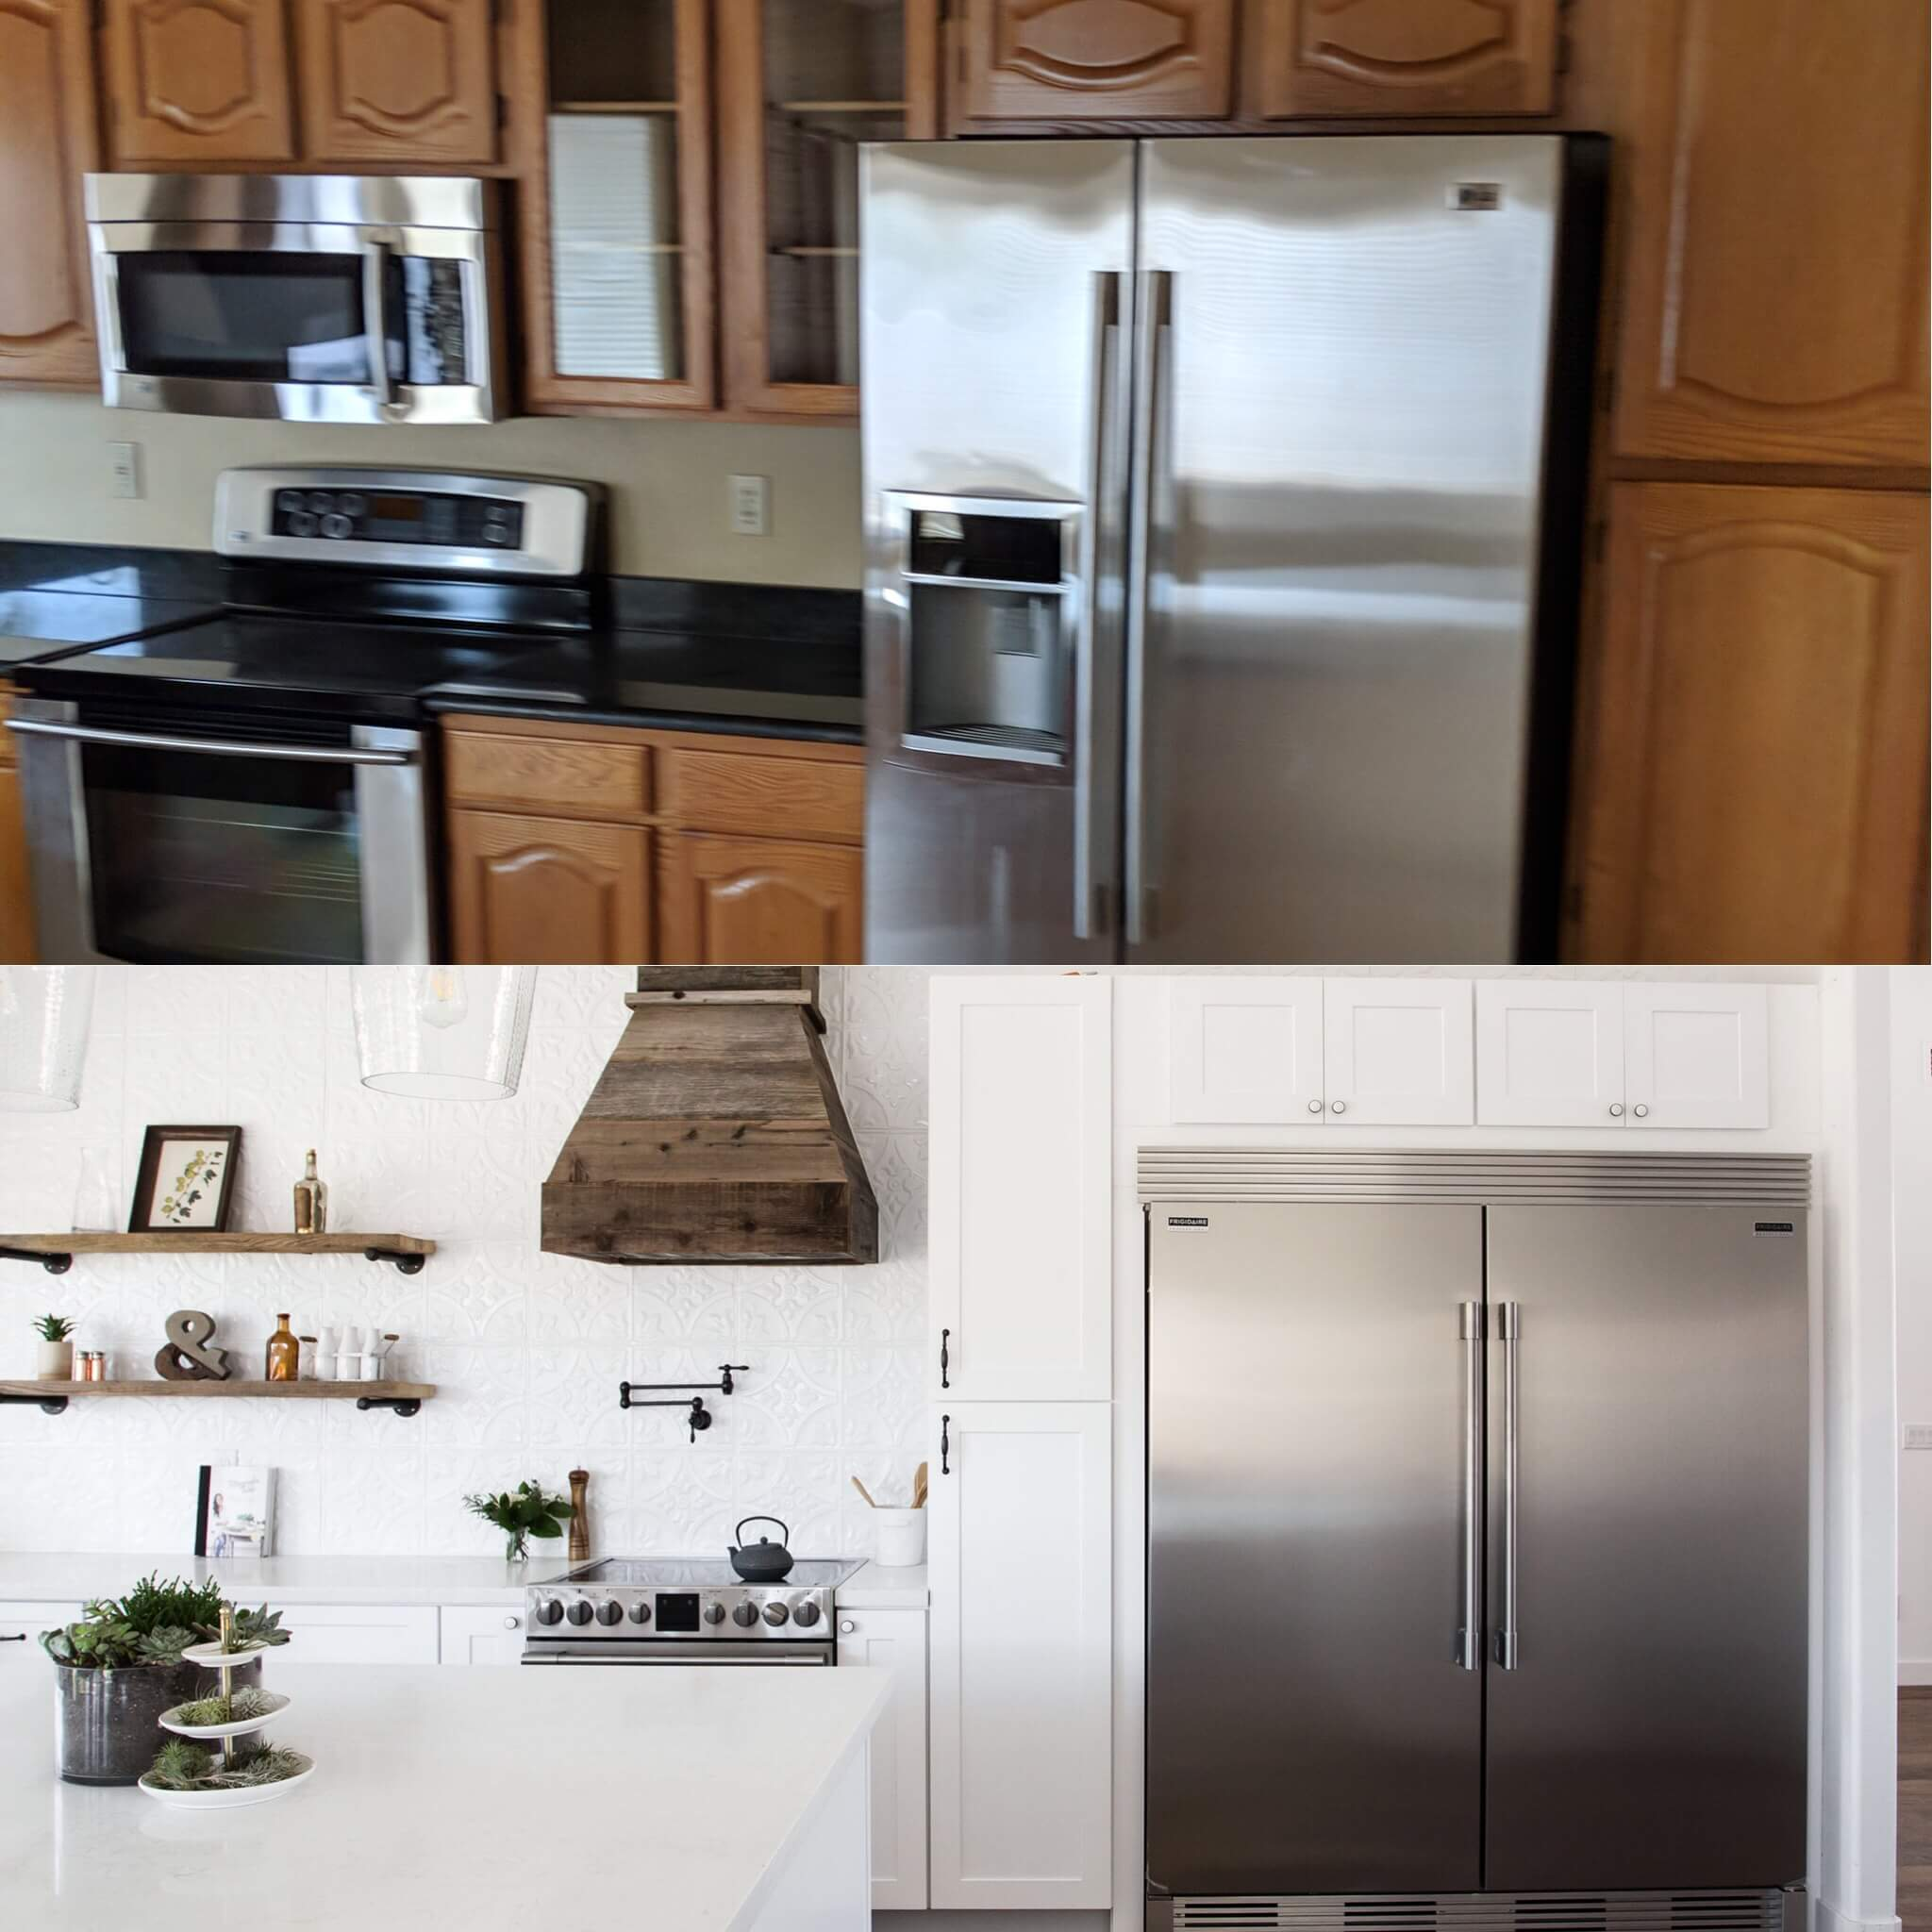 Sonoran Desert Living - Tere Before and After .jpg